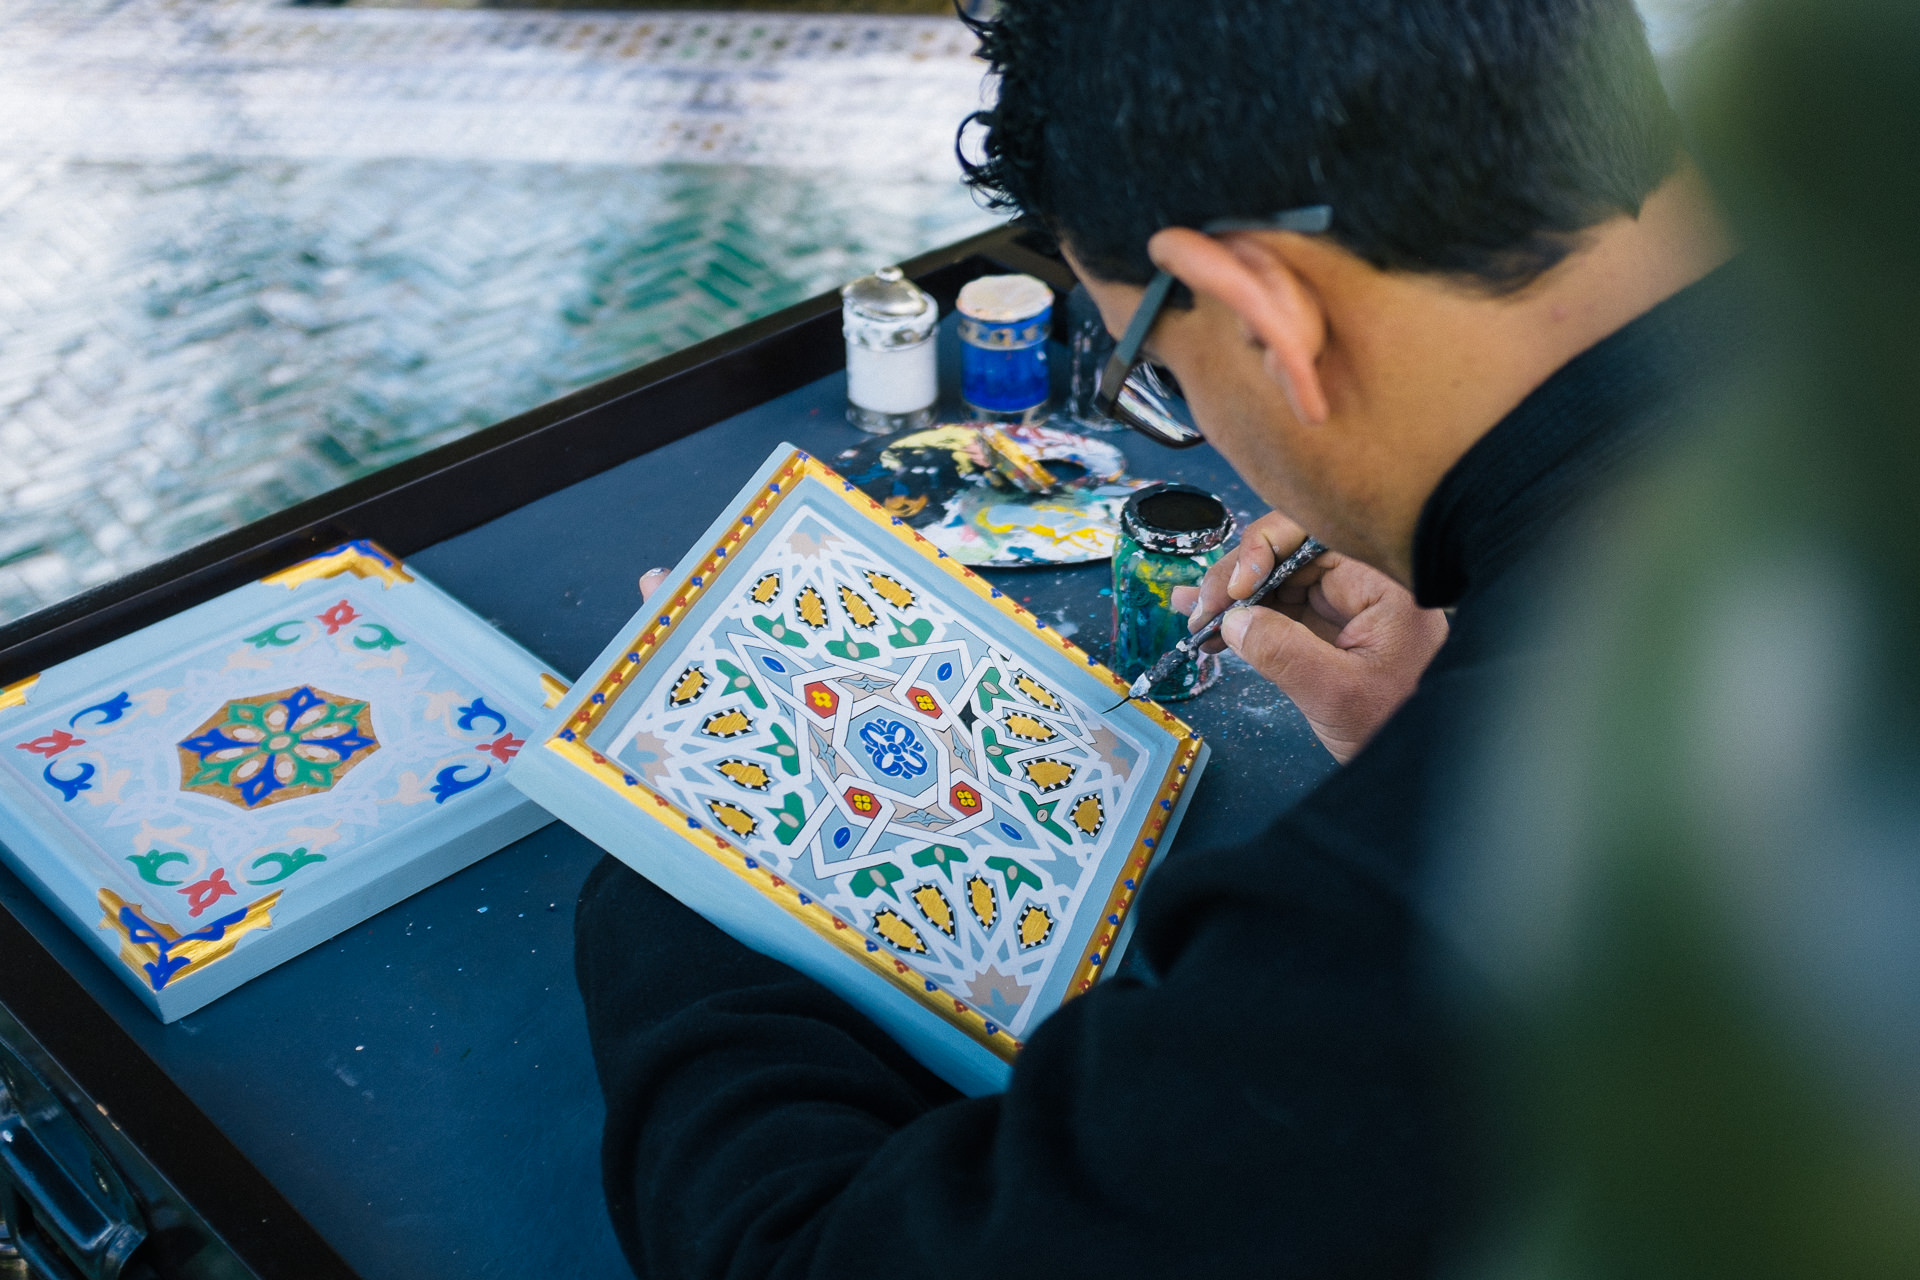 Local artist painting tiles in Marrakesh